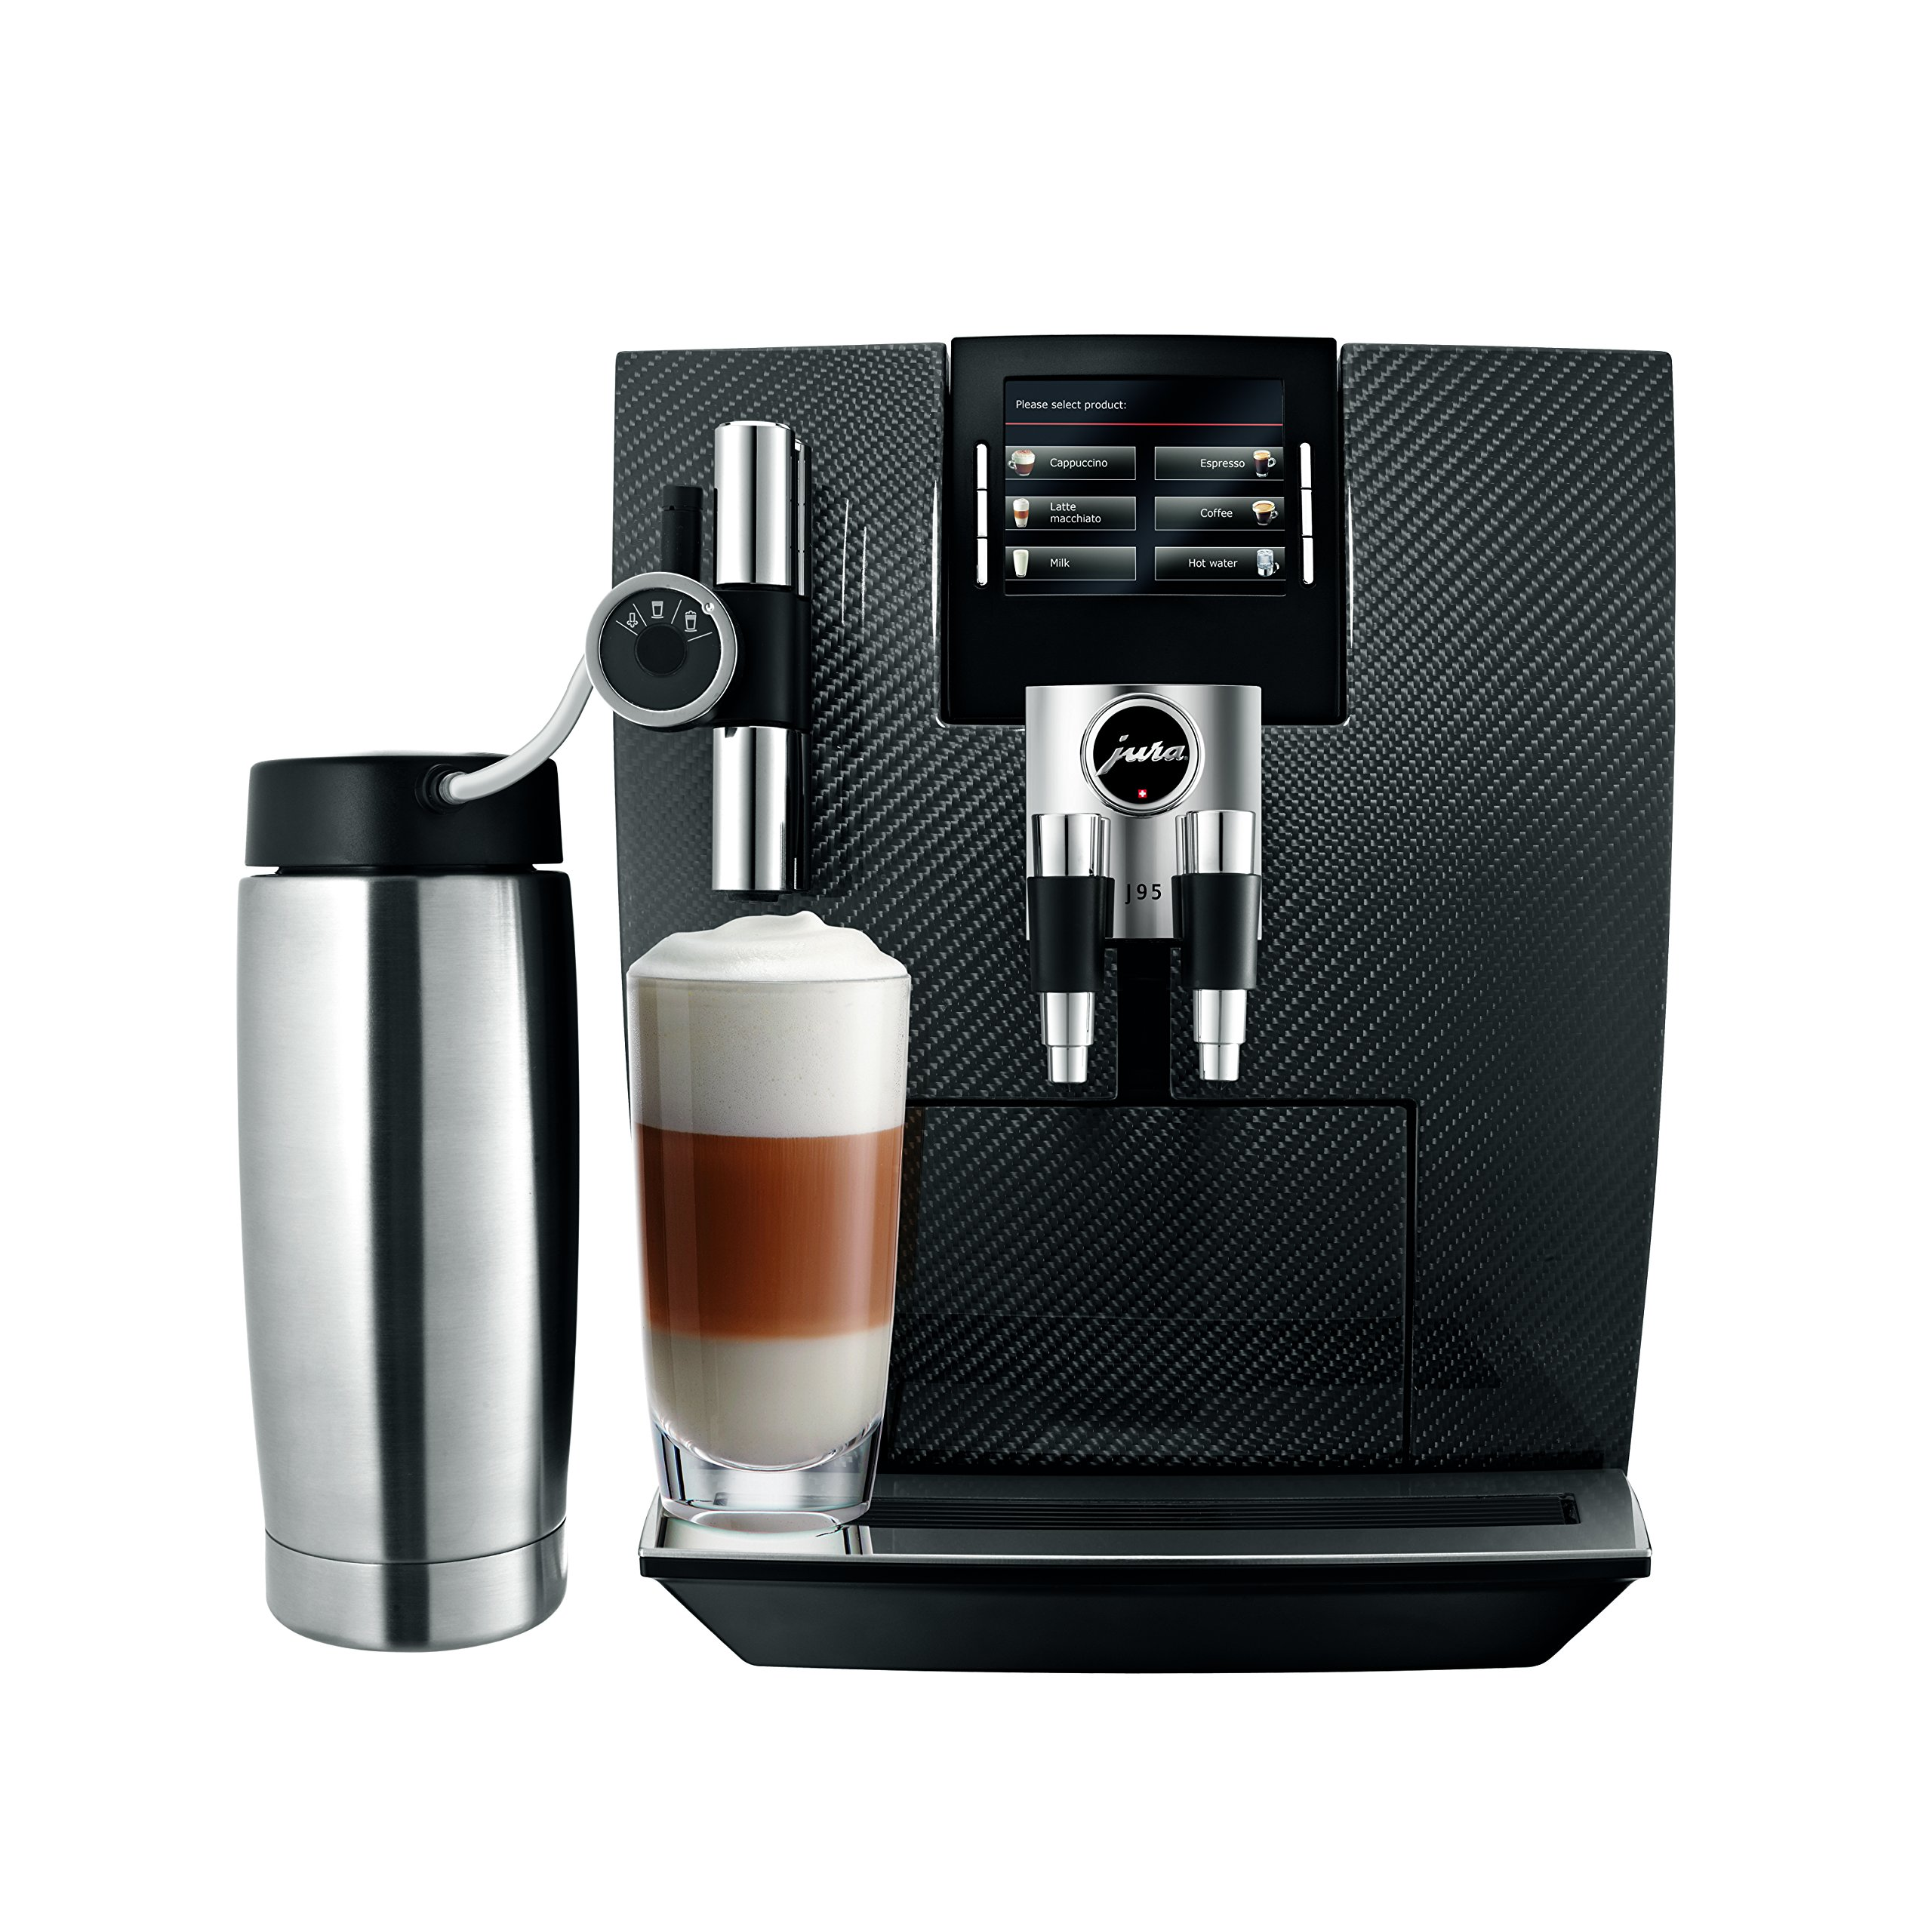 Jura J95 Automatic Coffee Machine, Carbon